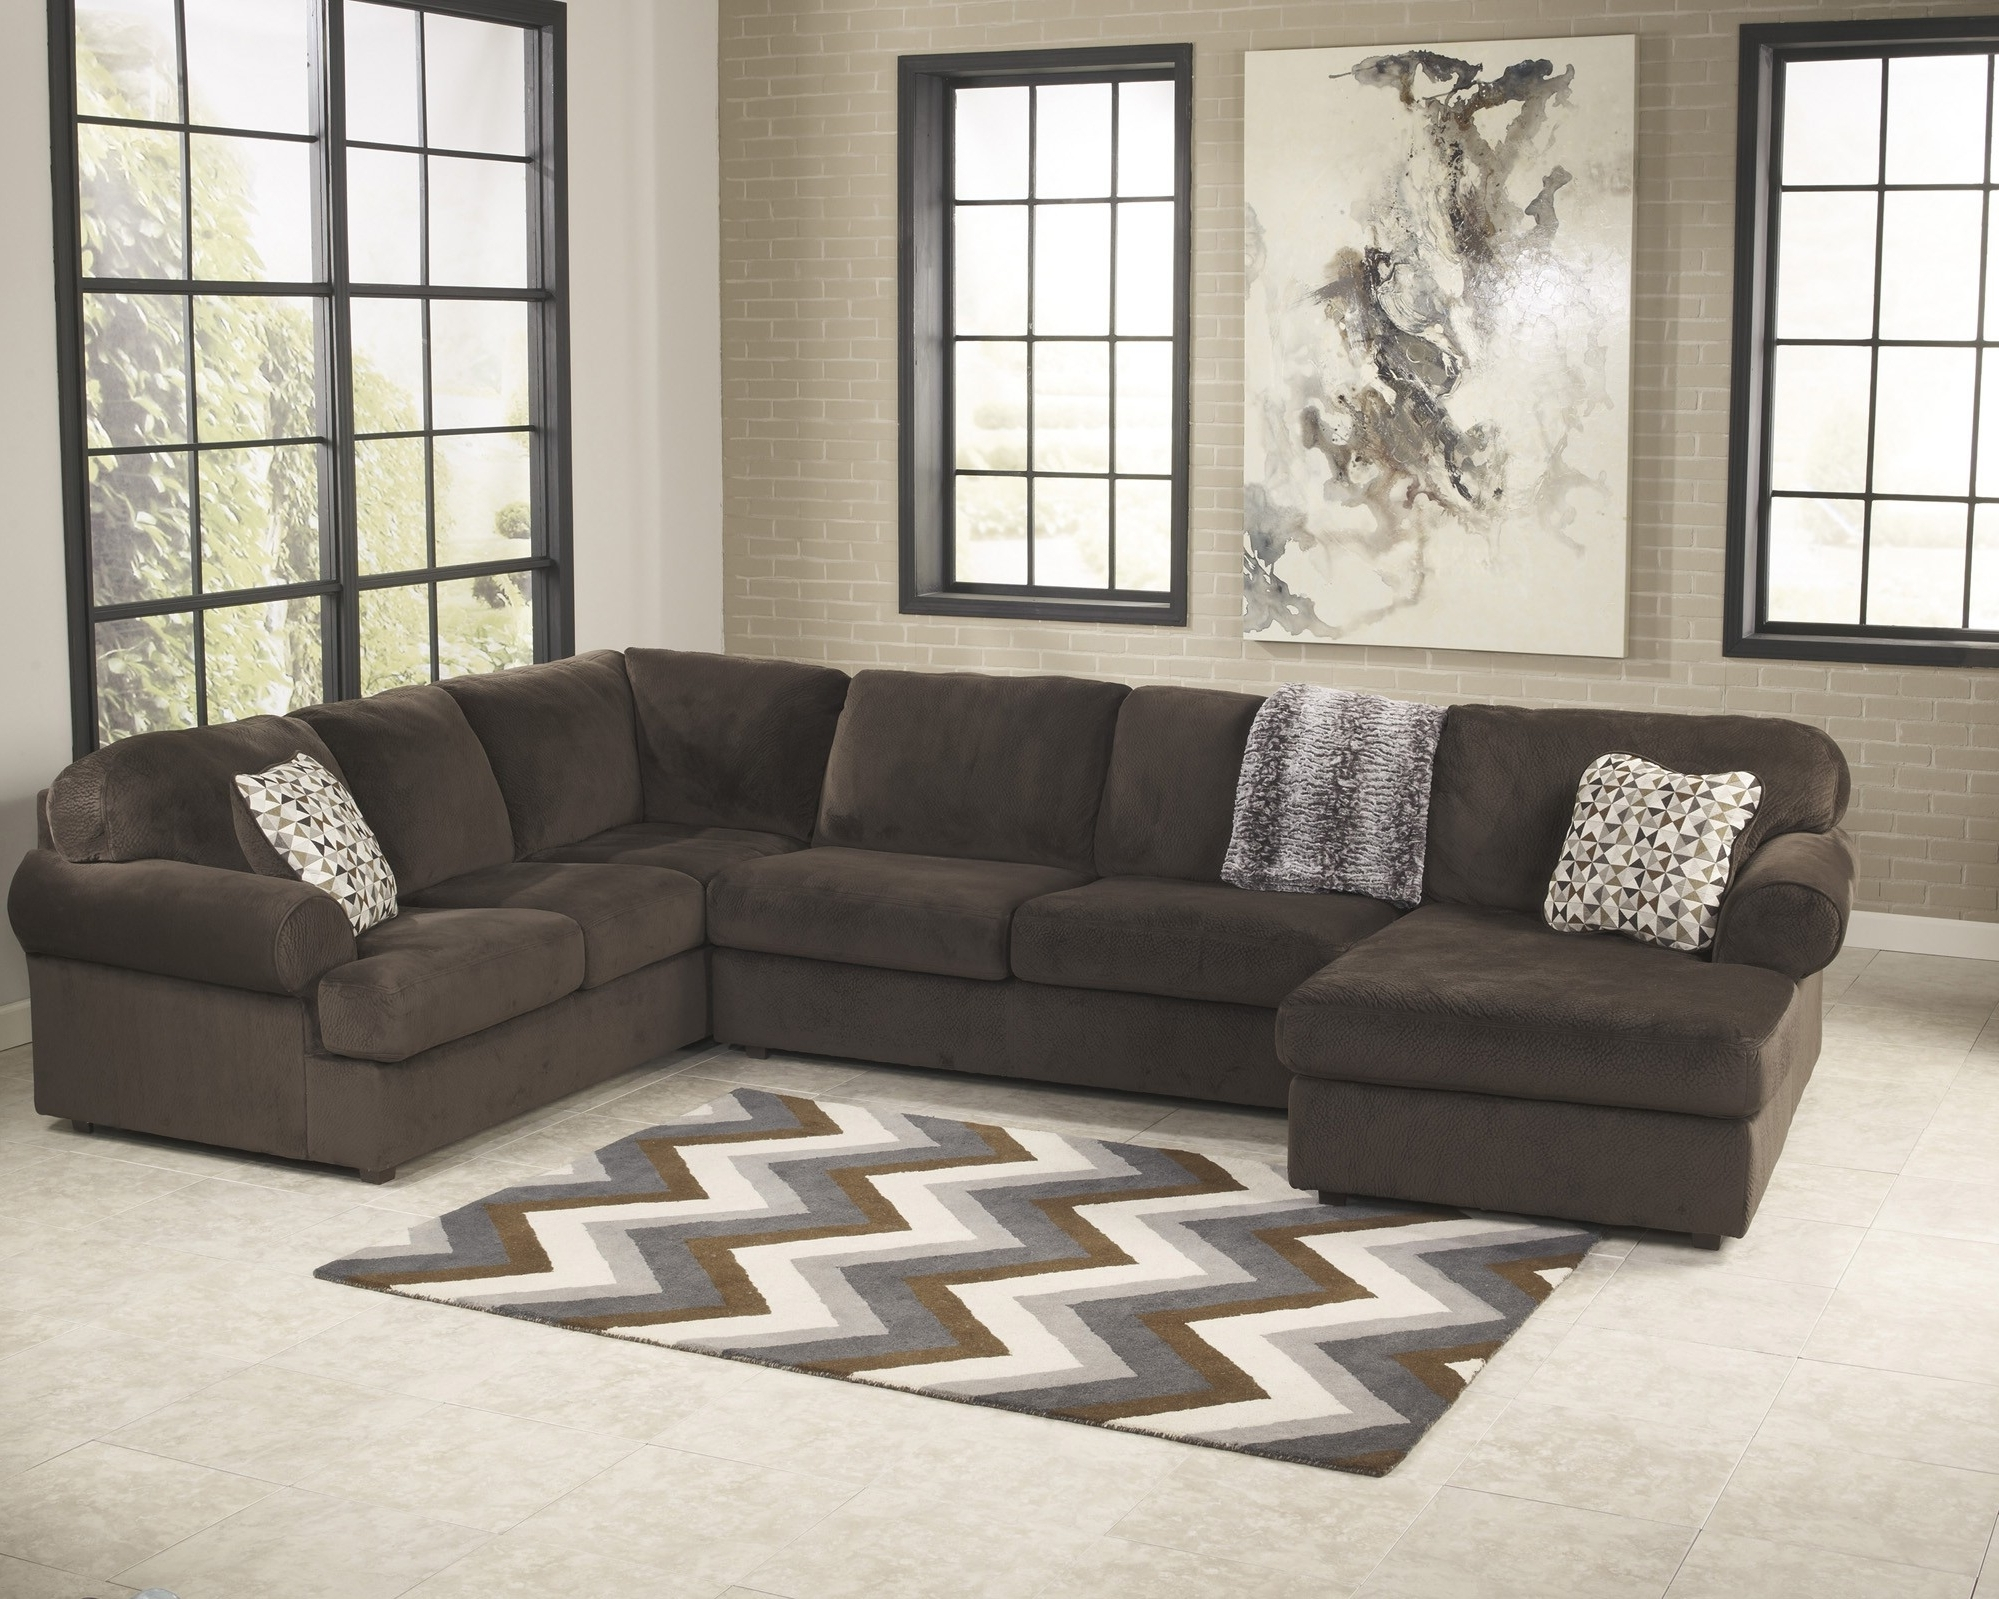 Greenville Sc Sectional Sofas With Regard To Well Liked Chairs : Jessa Place Chocolate Piece Sectional Sofa For Sofas Sale (View 13 of 20)